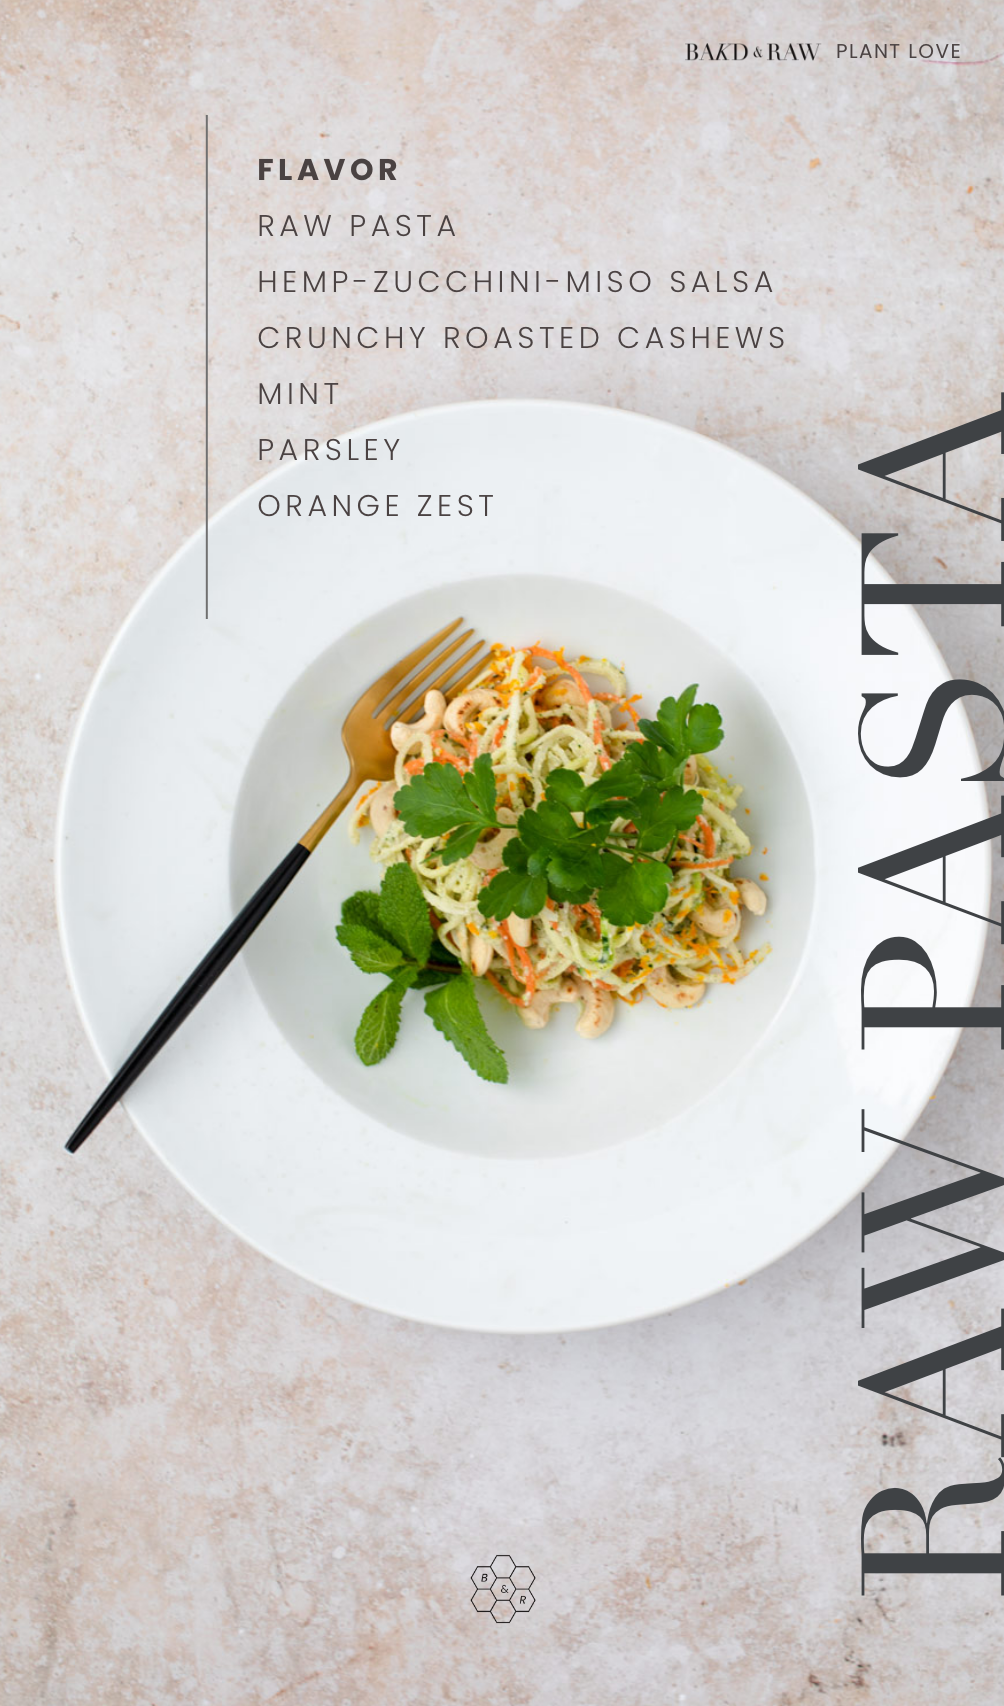 Delicious and healthy raw pasta with cashew crunch by Karolin Baitinger